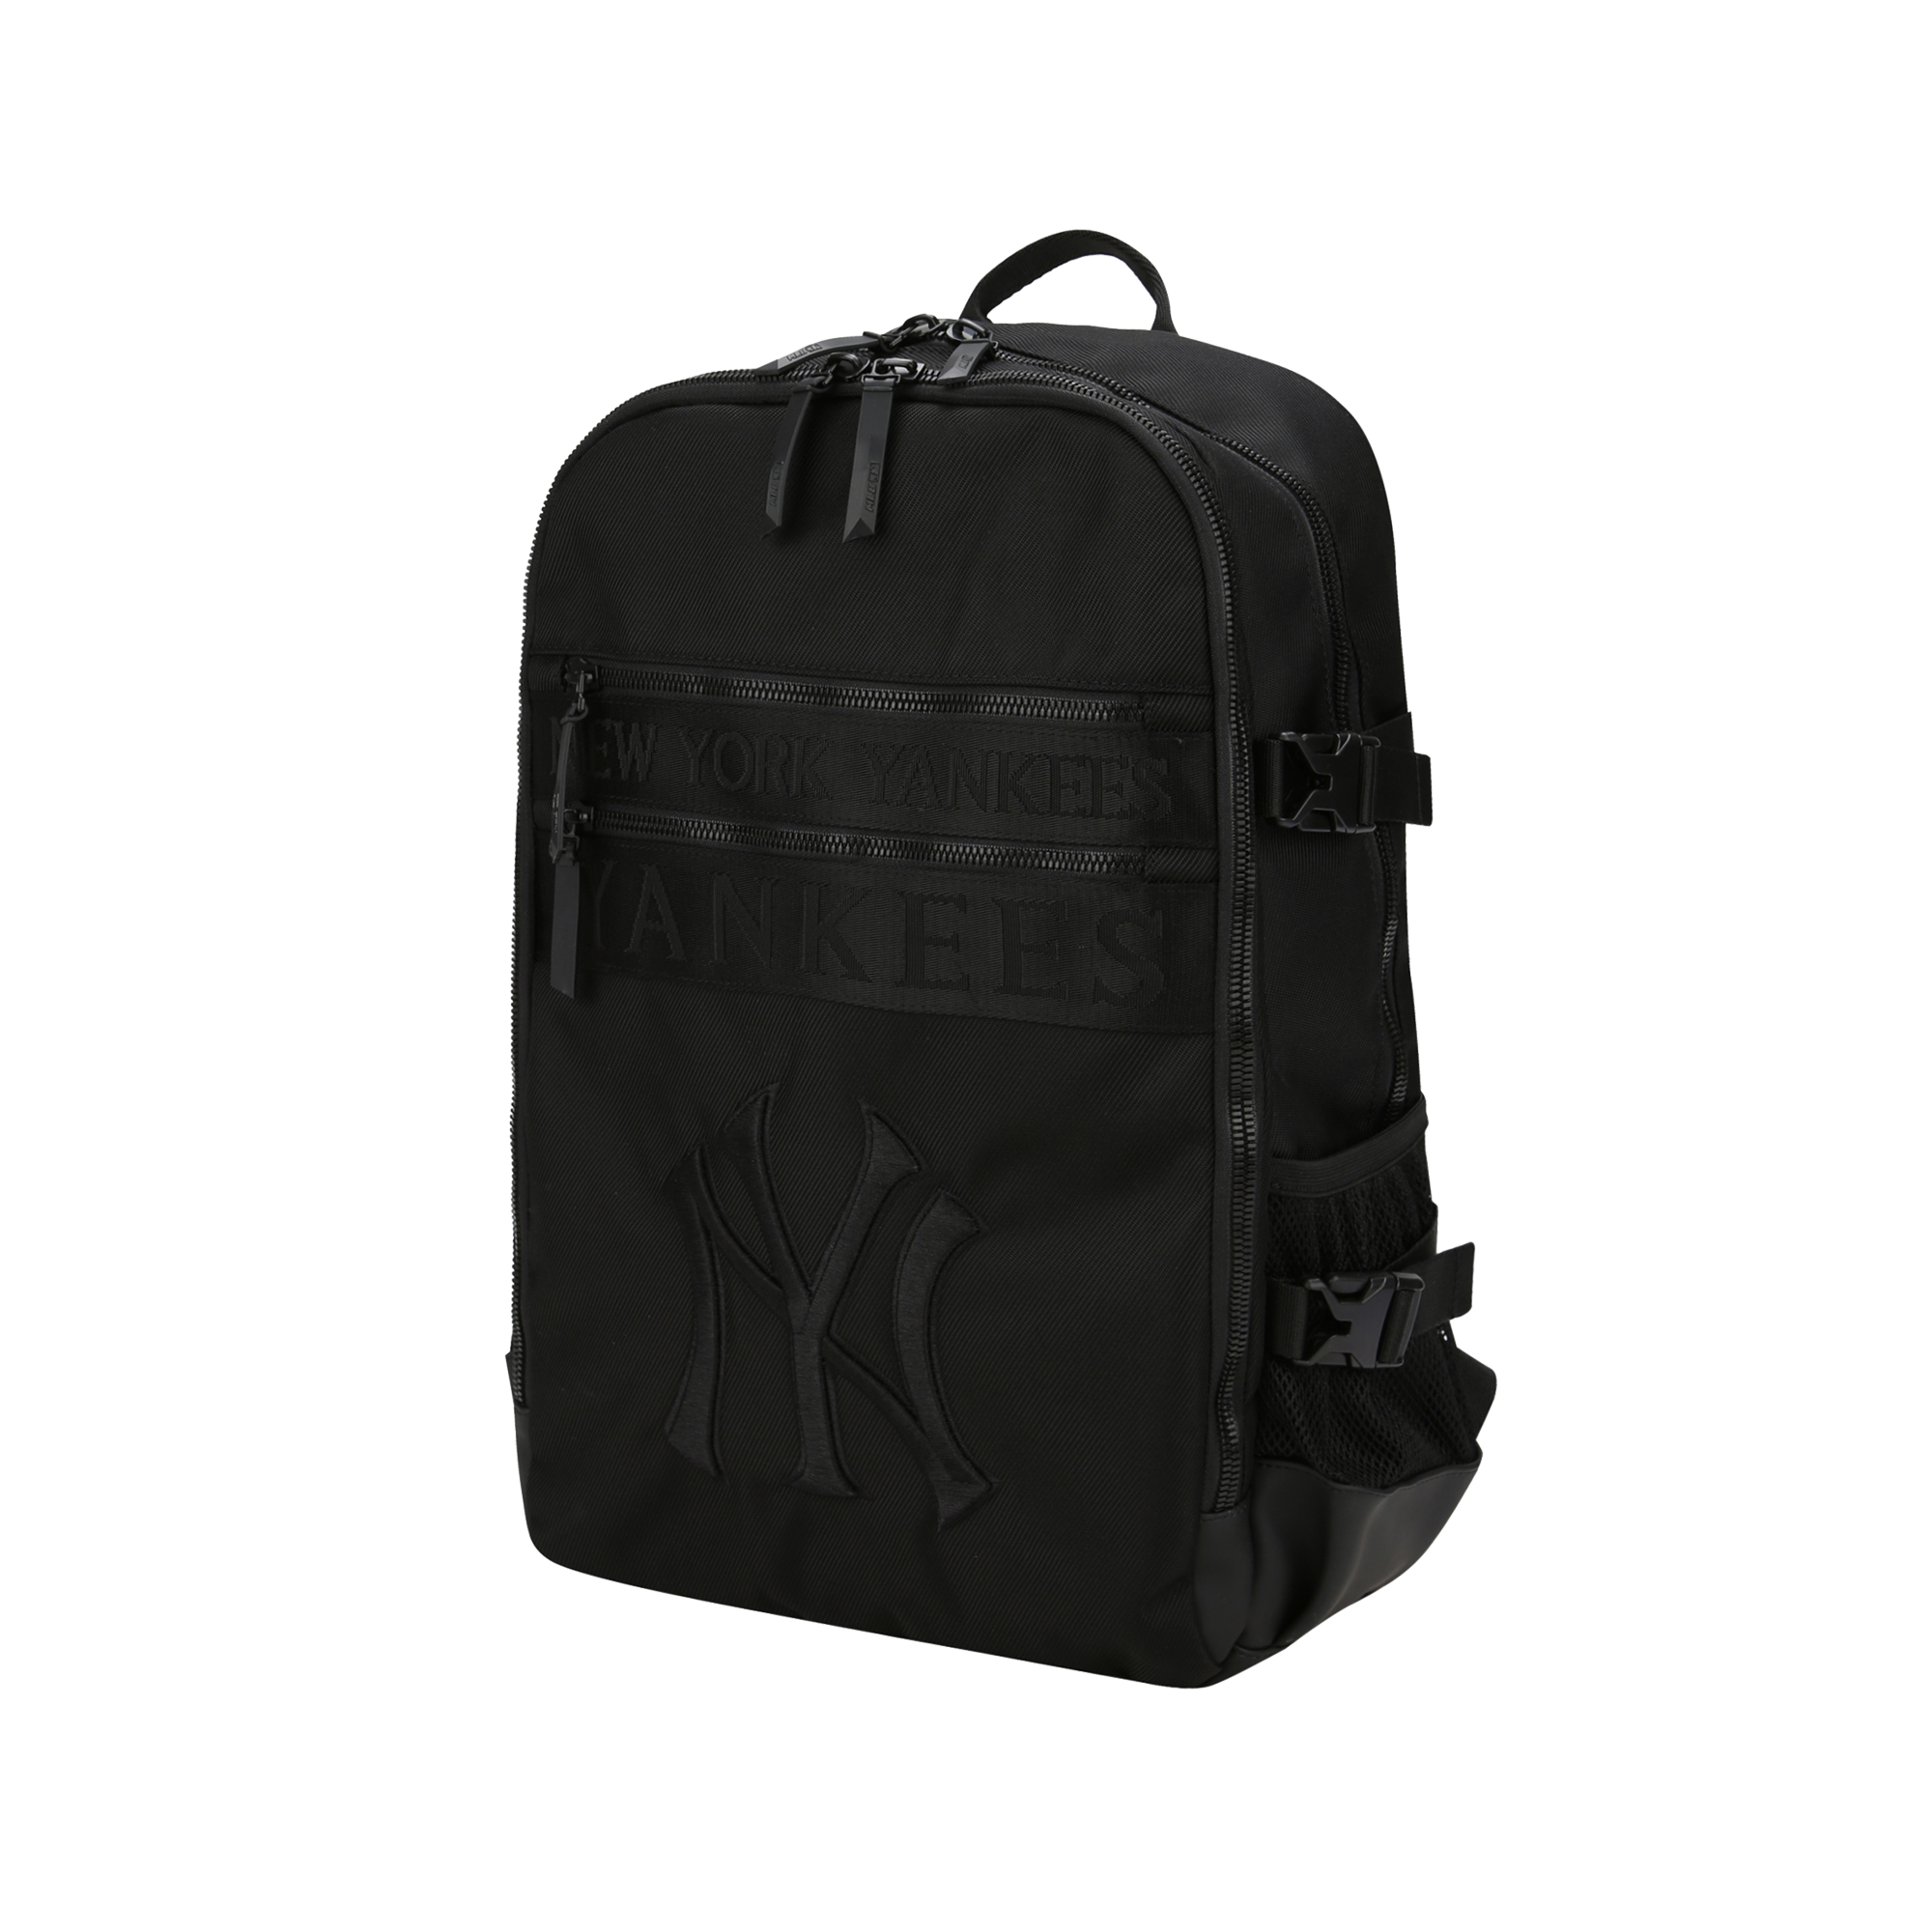 NEW YORK YANKEES BLACKOUT HARLEY BACKPACK